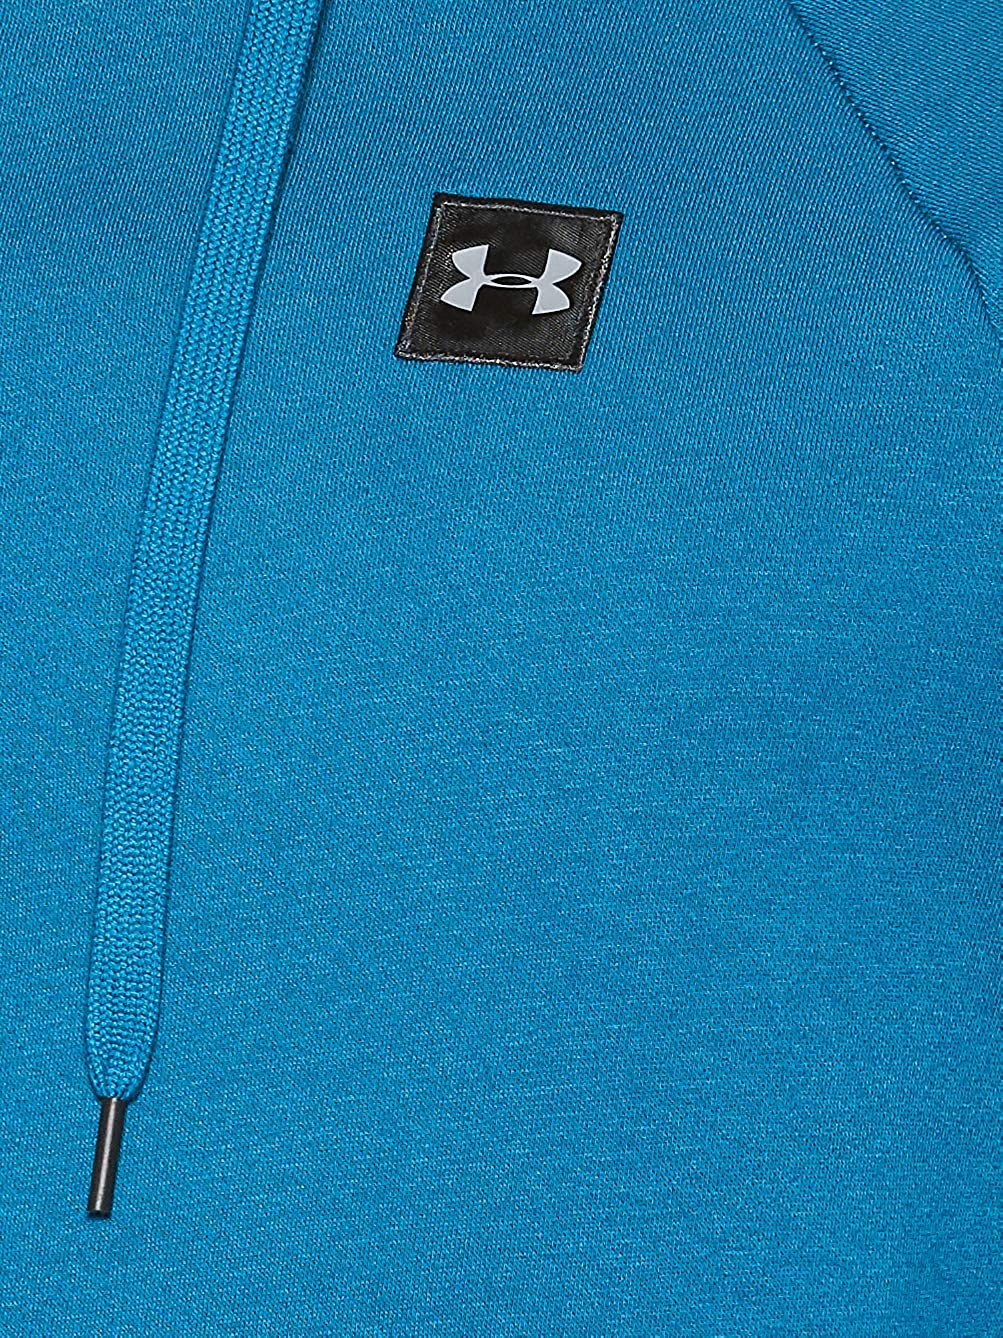 Under Armour Men's Rival Fleece Hoodie, Teal Vibe (417)/Black, 3X-Large